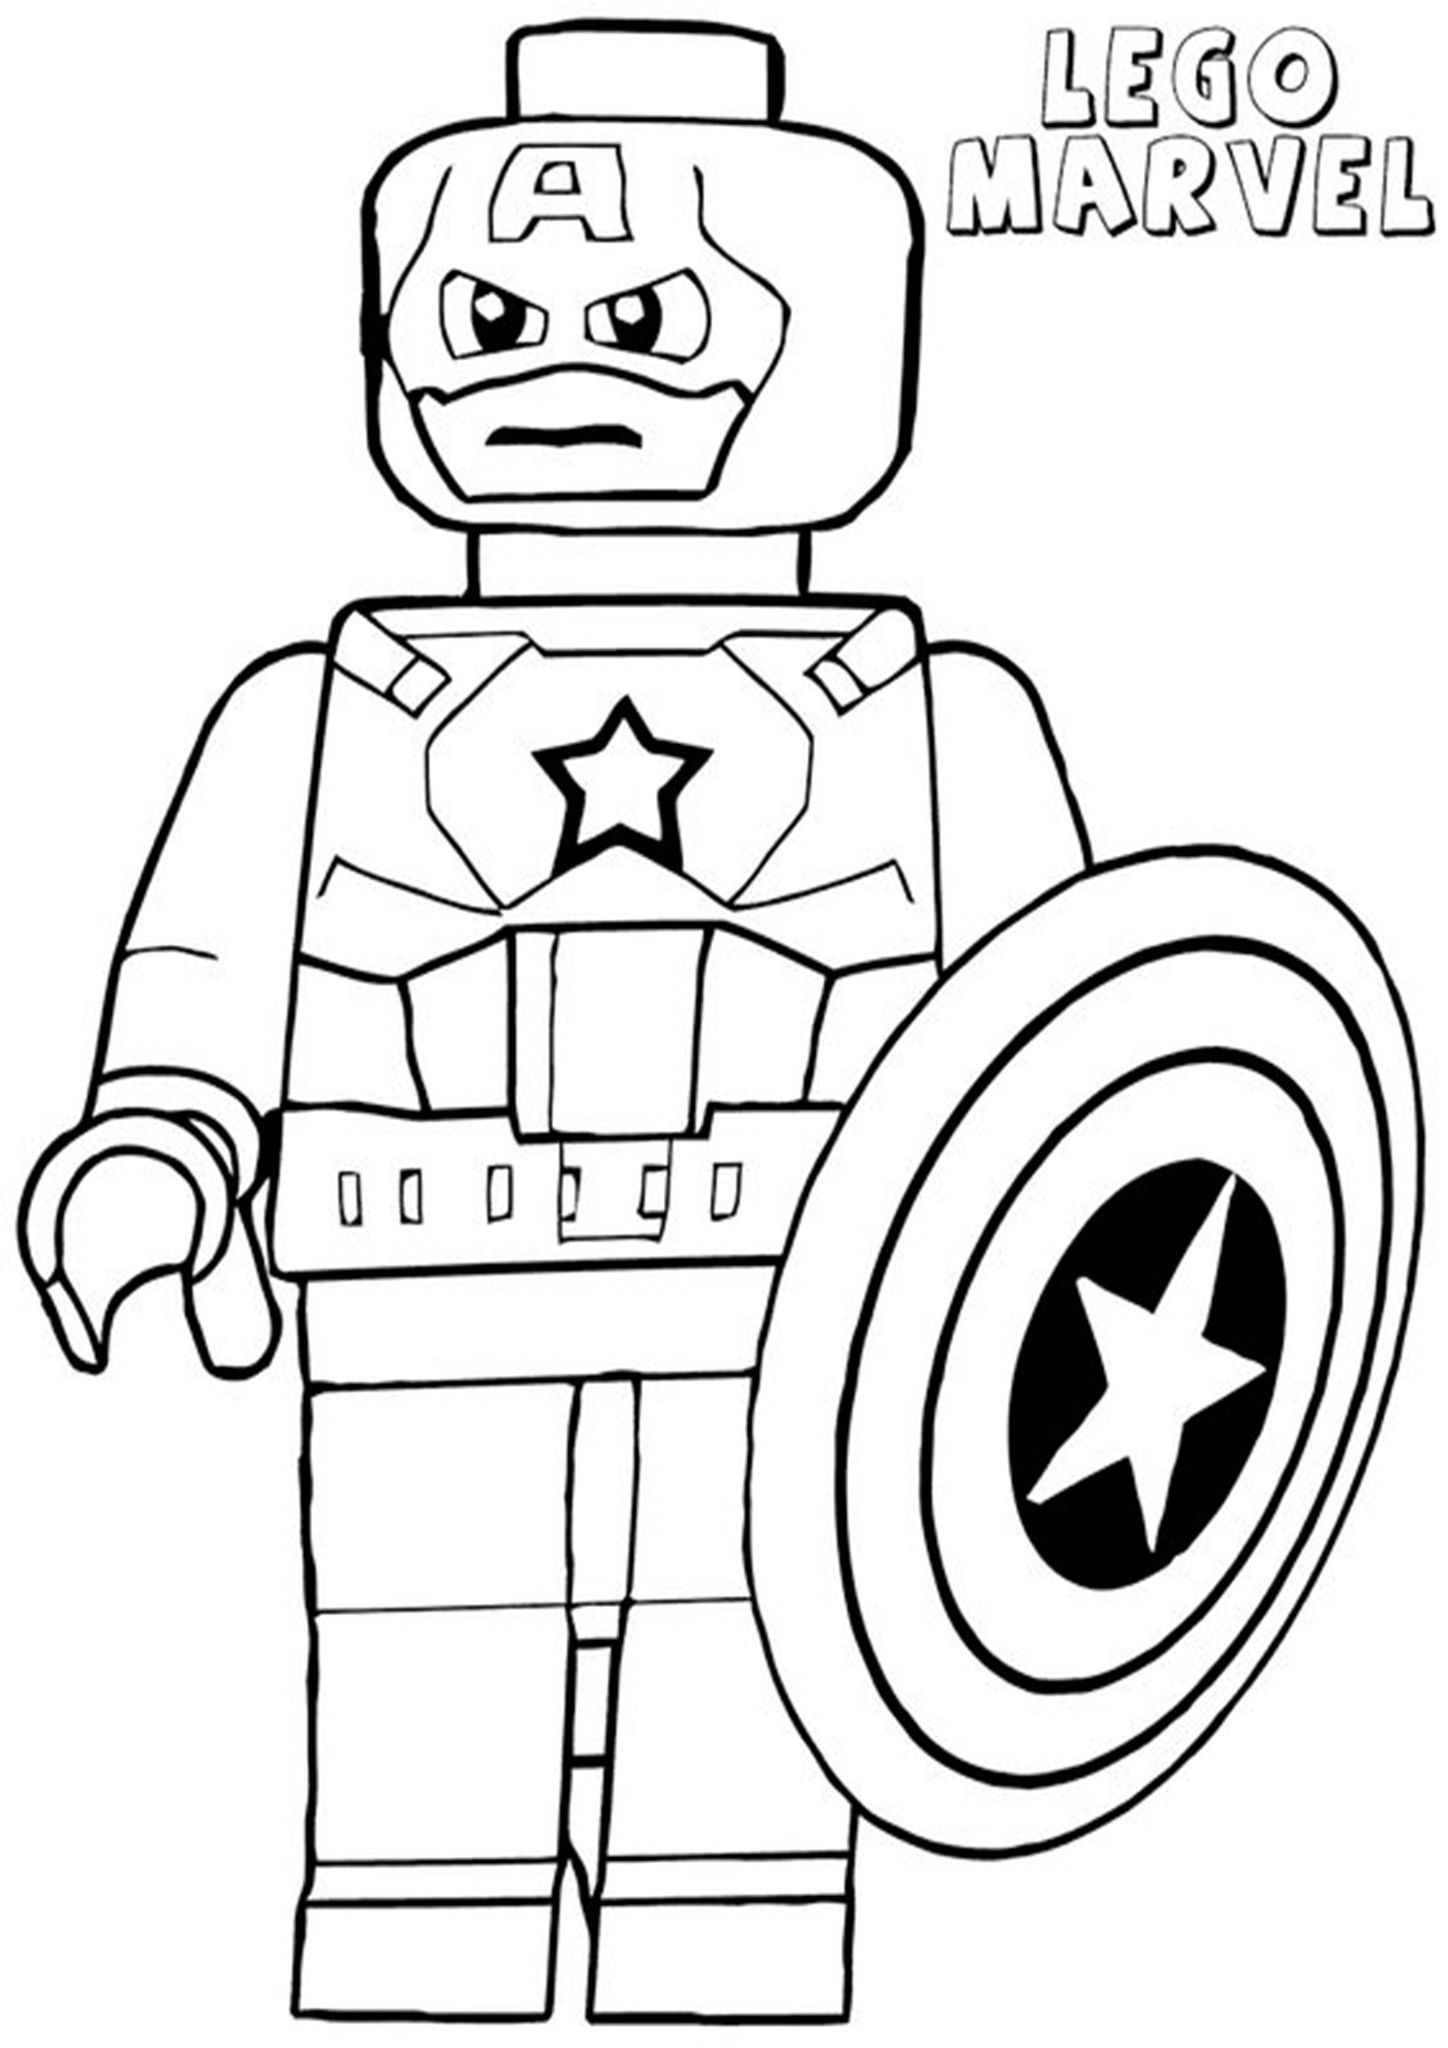 Free Easy To Print Captain America Coloring Pages Superhero Coloring Avengers Coloring Captain America Coloring Pages